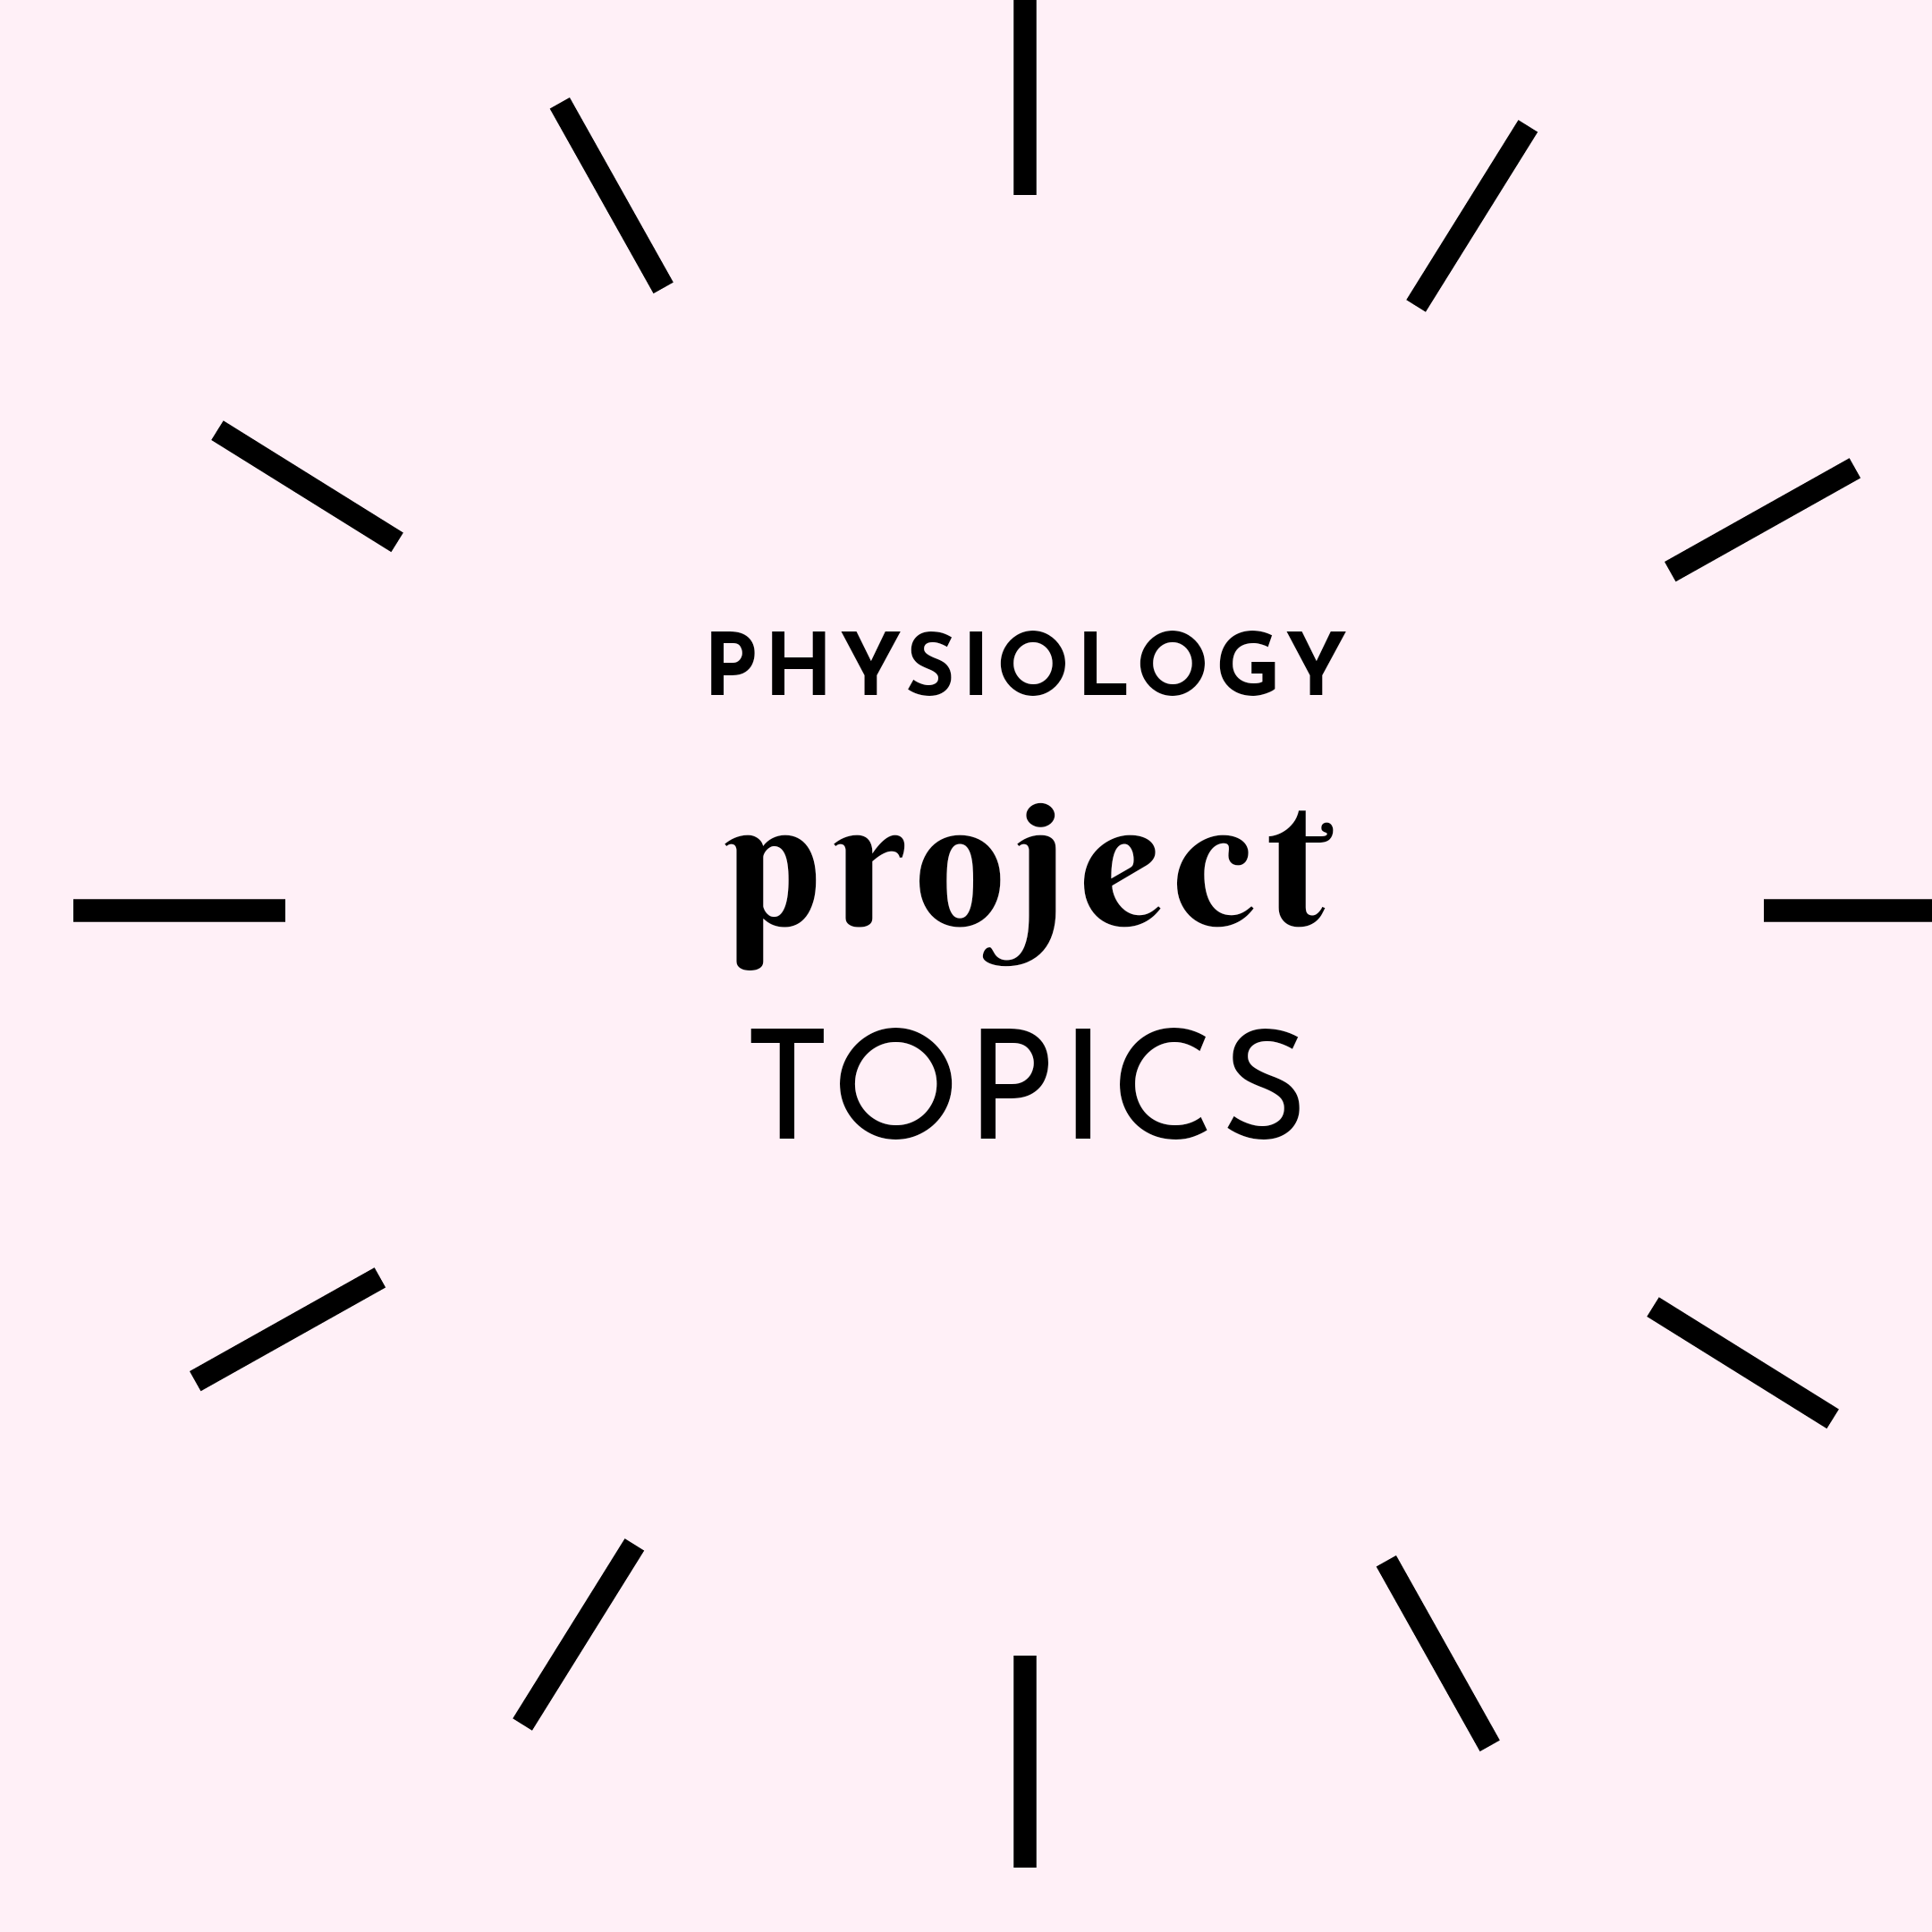 Project topics in physiology